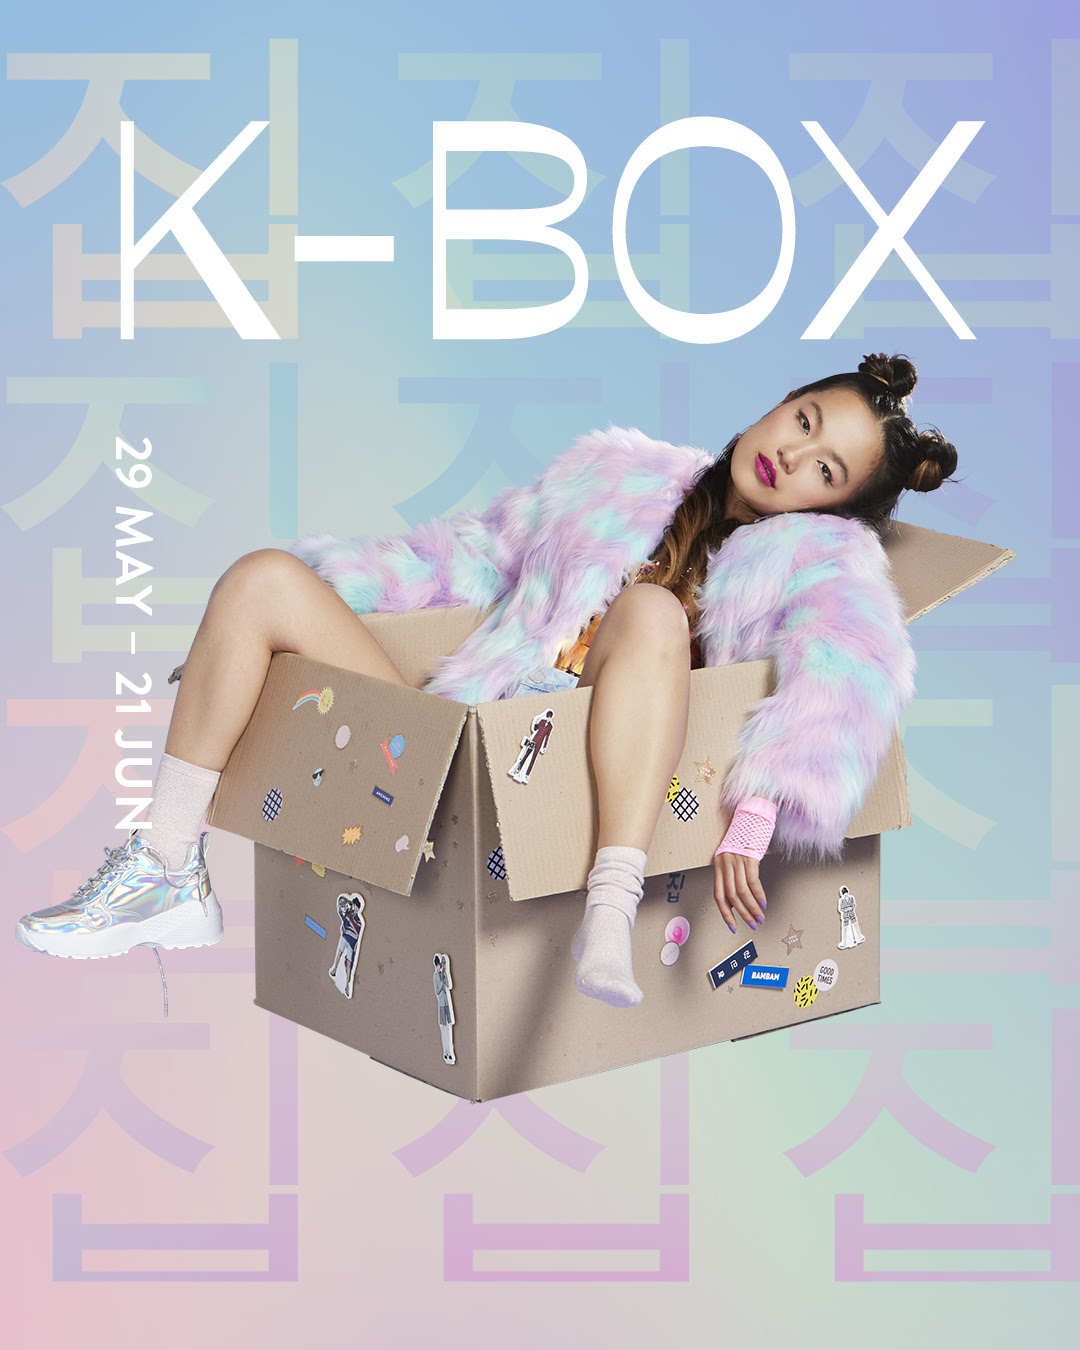 K-BOX - The raucous and riotous side of family